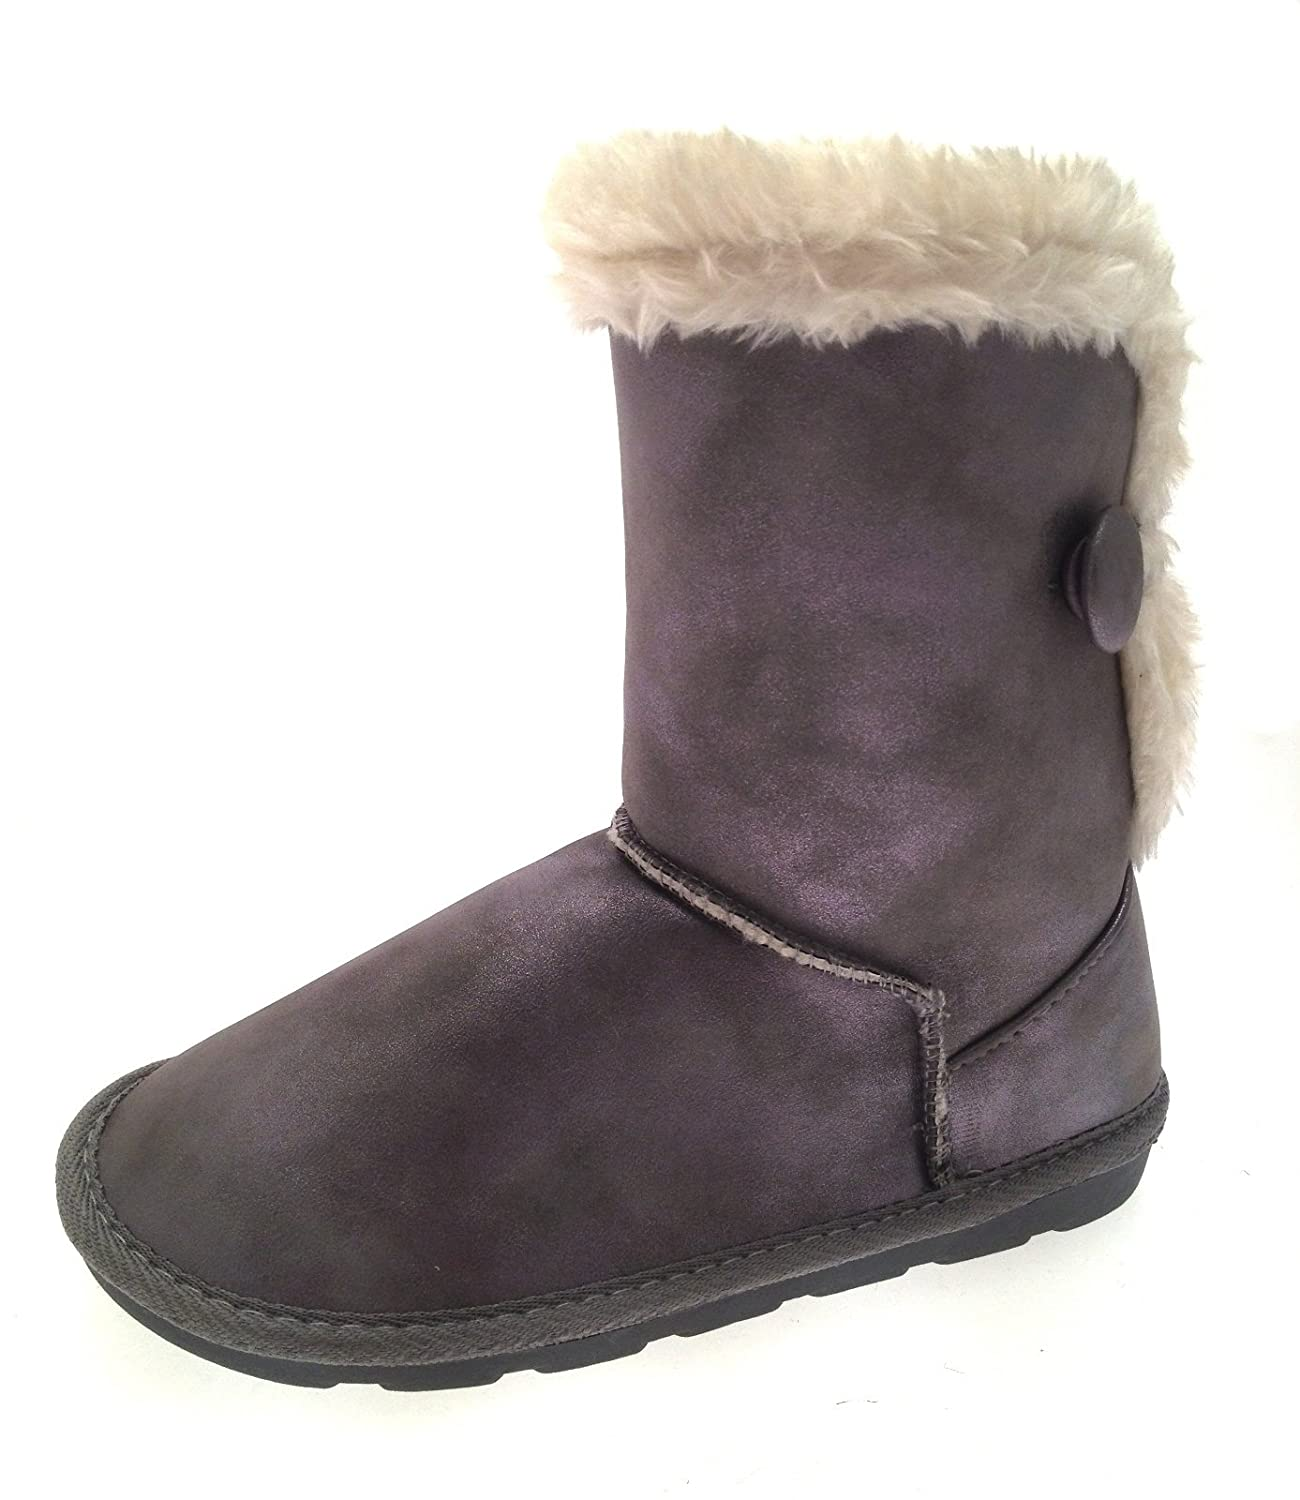 8b2ba3776bf8 Lora Dora Girls Faux Suede Snugg Ankle Boots  Amazon.co.uk  Shoes   Bags